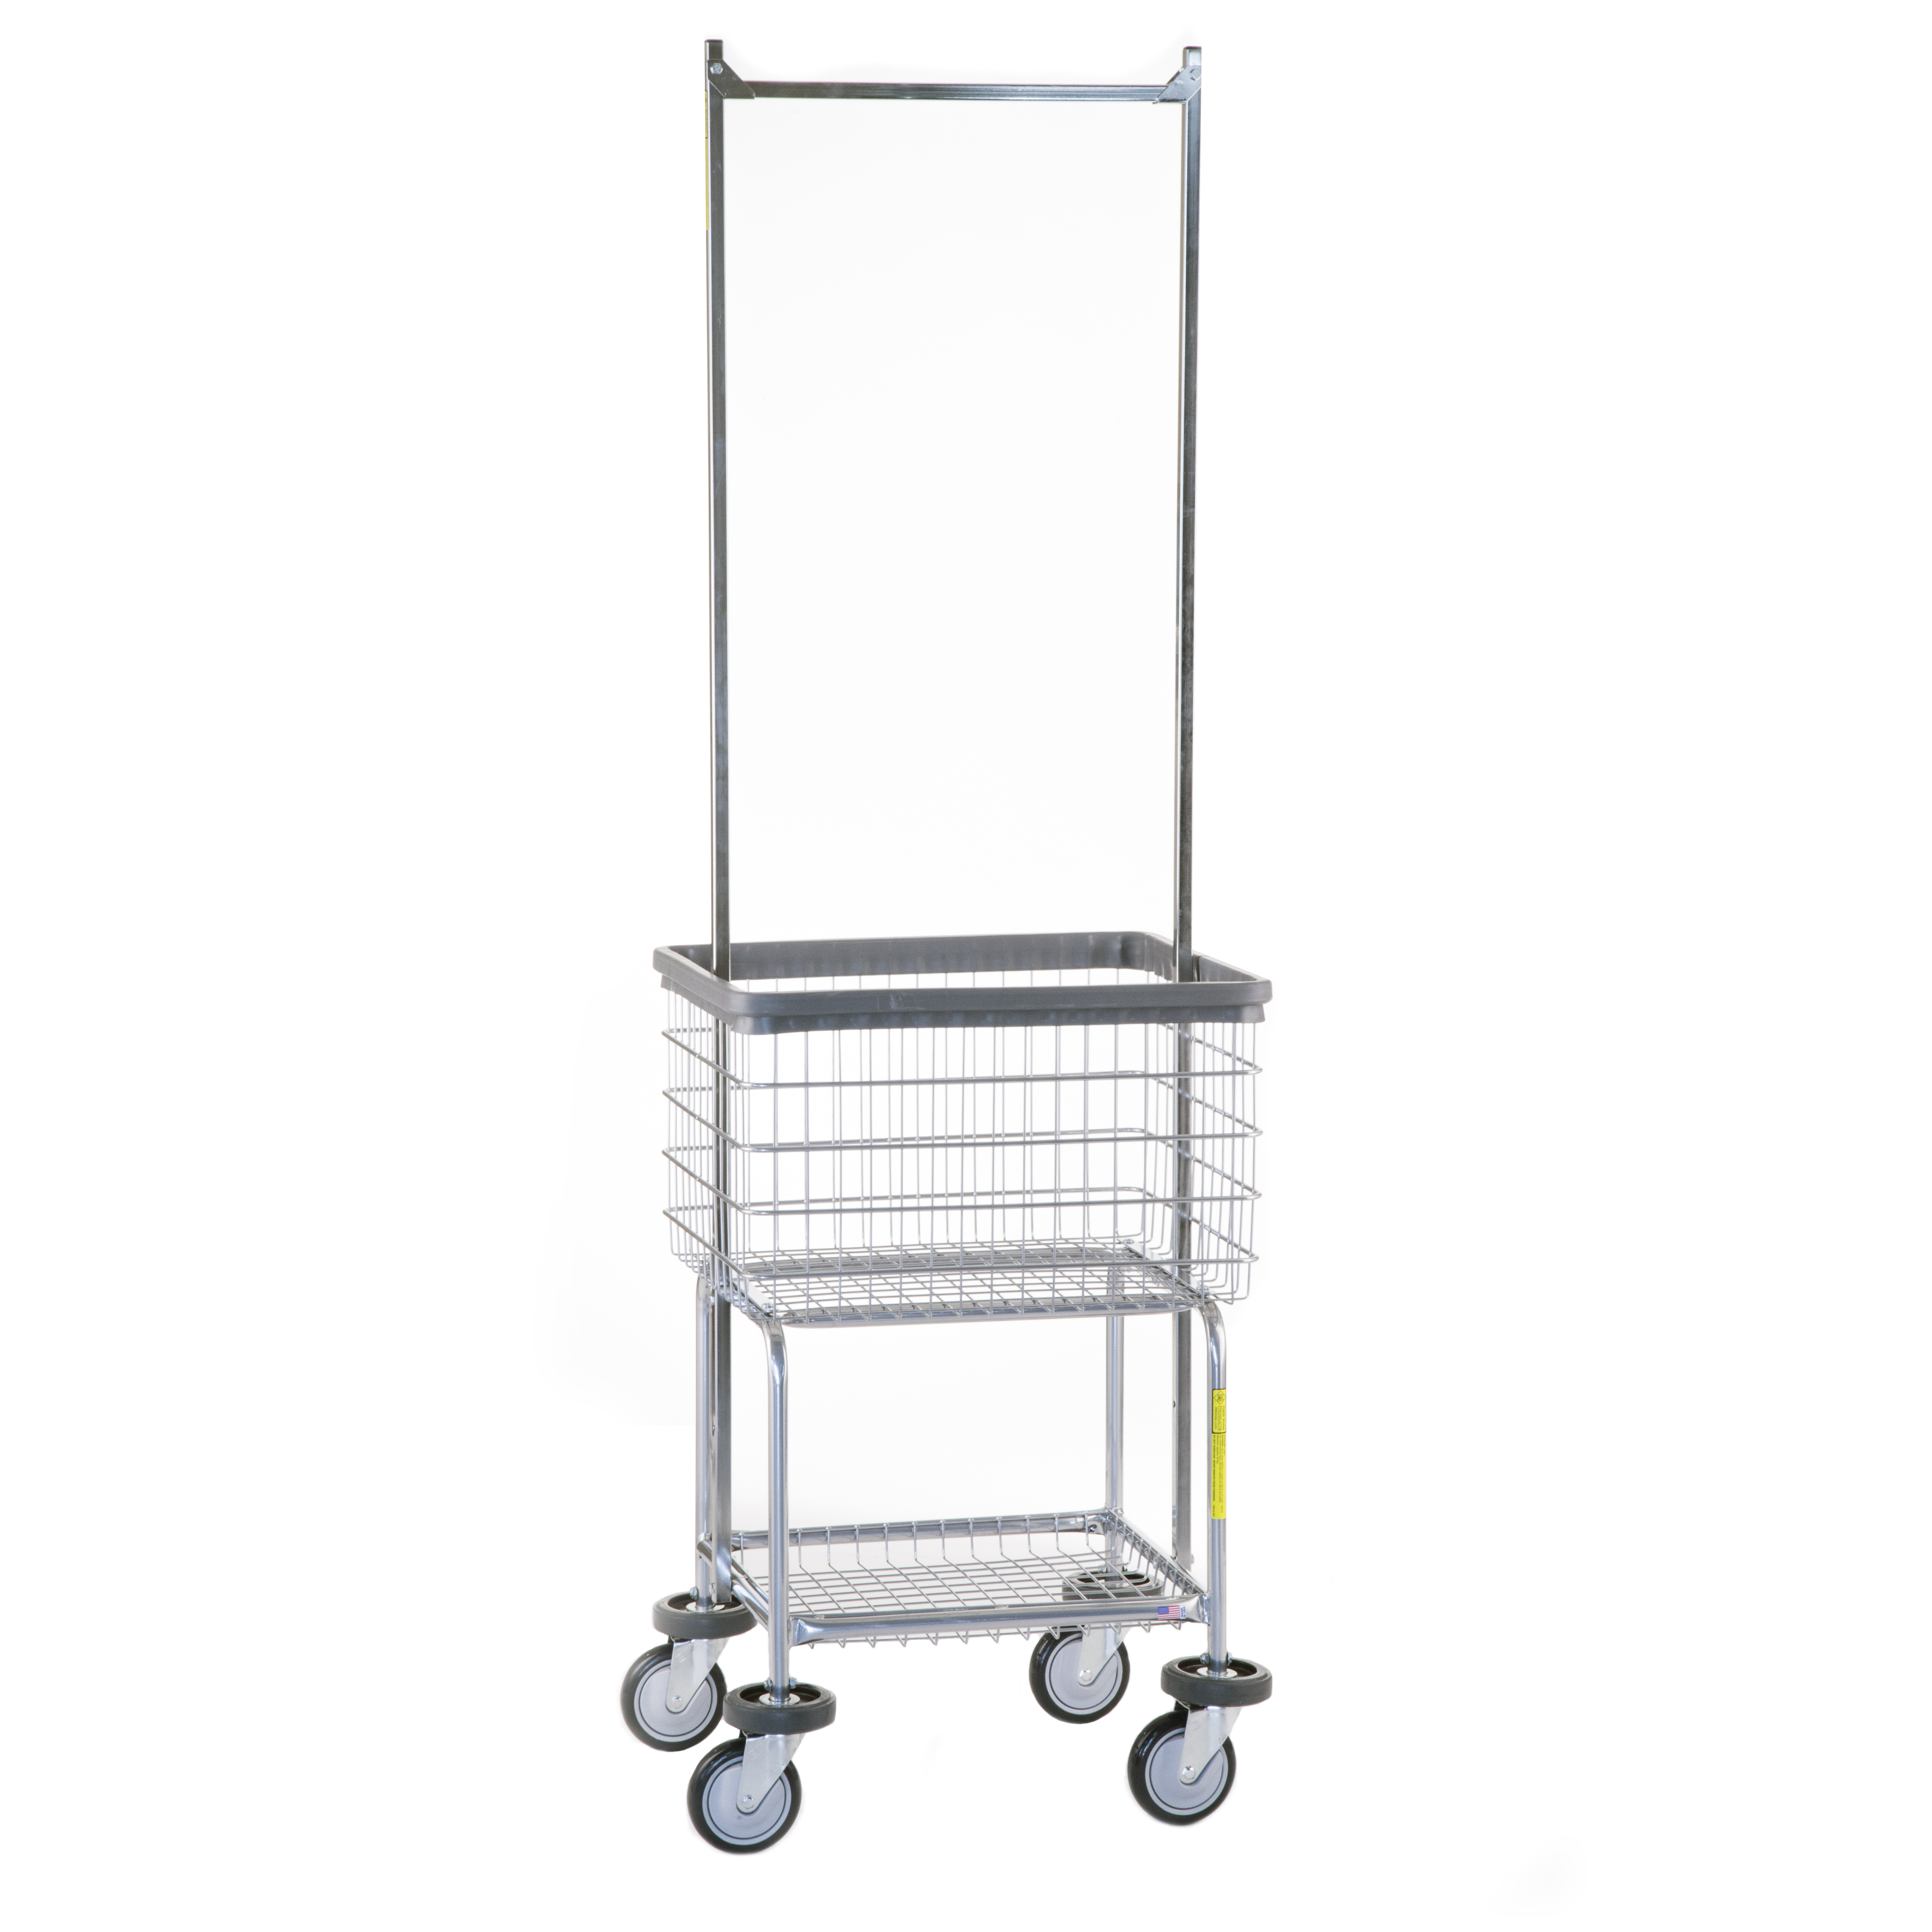 Deluxe Elevated Heavy Duty Laundry Cart W/Dbl. Pole Rack